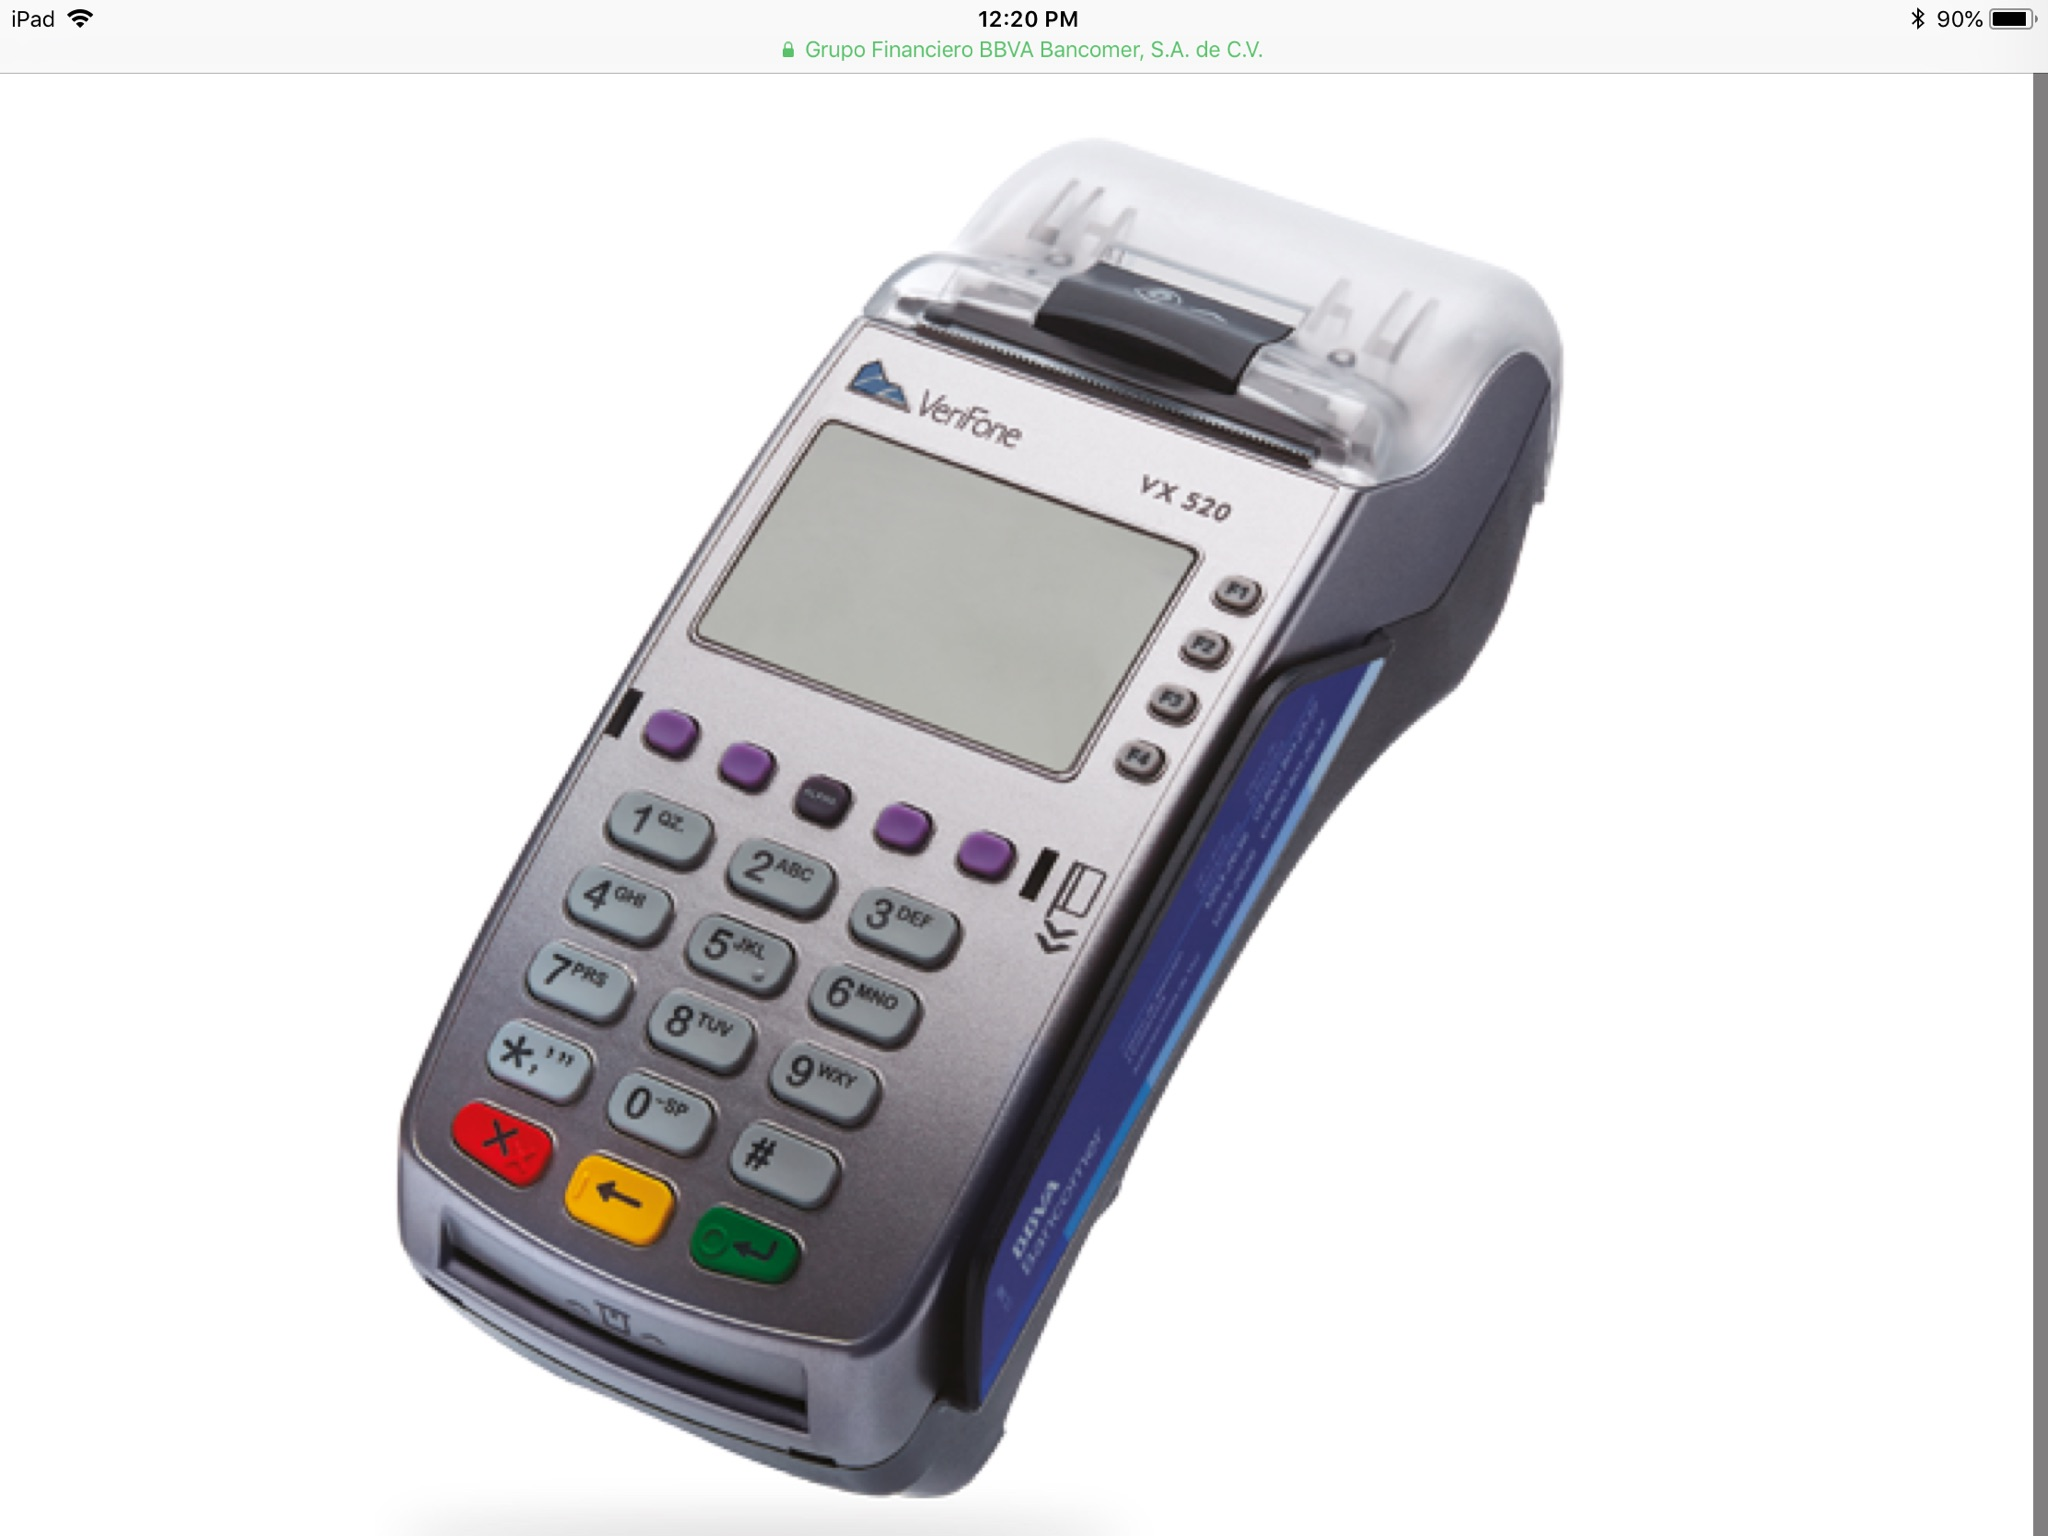 Major Retailers that Support NFC Payments | MacRumors Forums